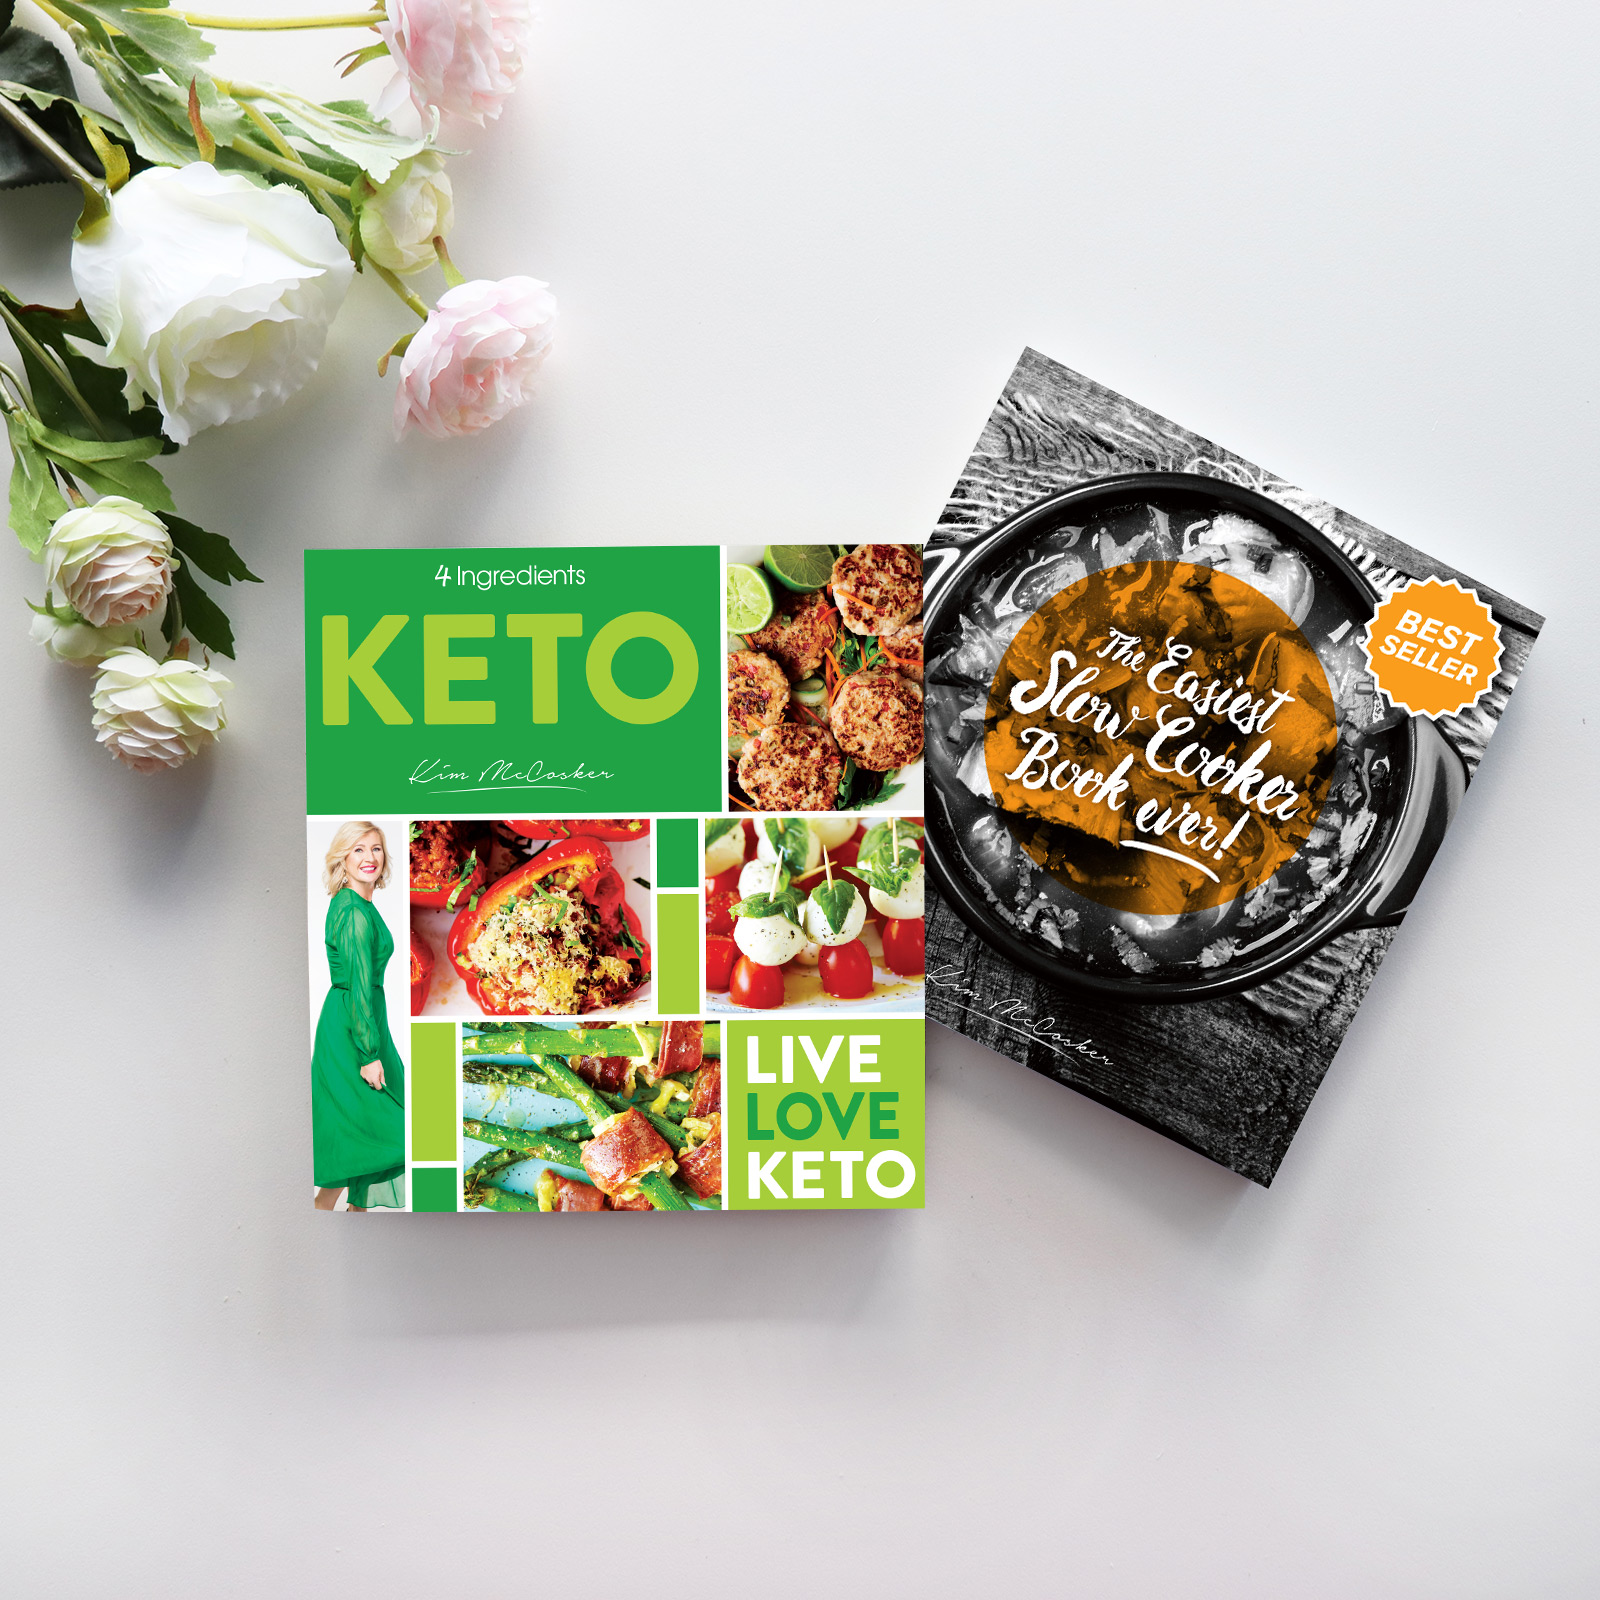 4 Ingredients Keto & The Easiest Slow Cooker Book Ever!